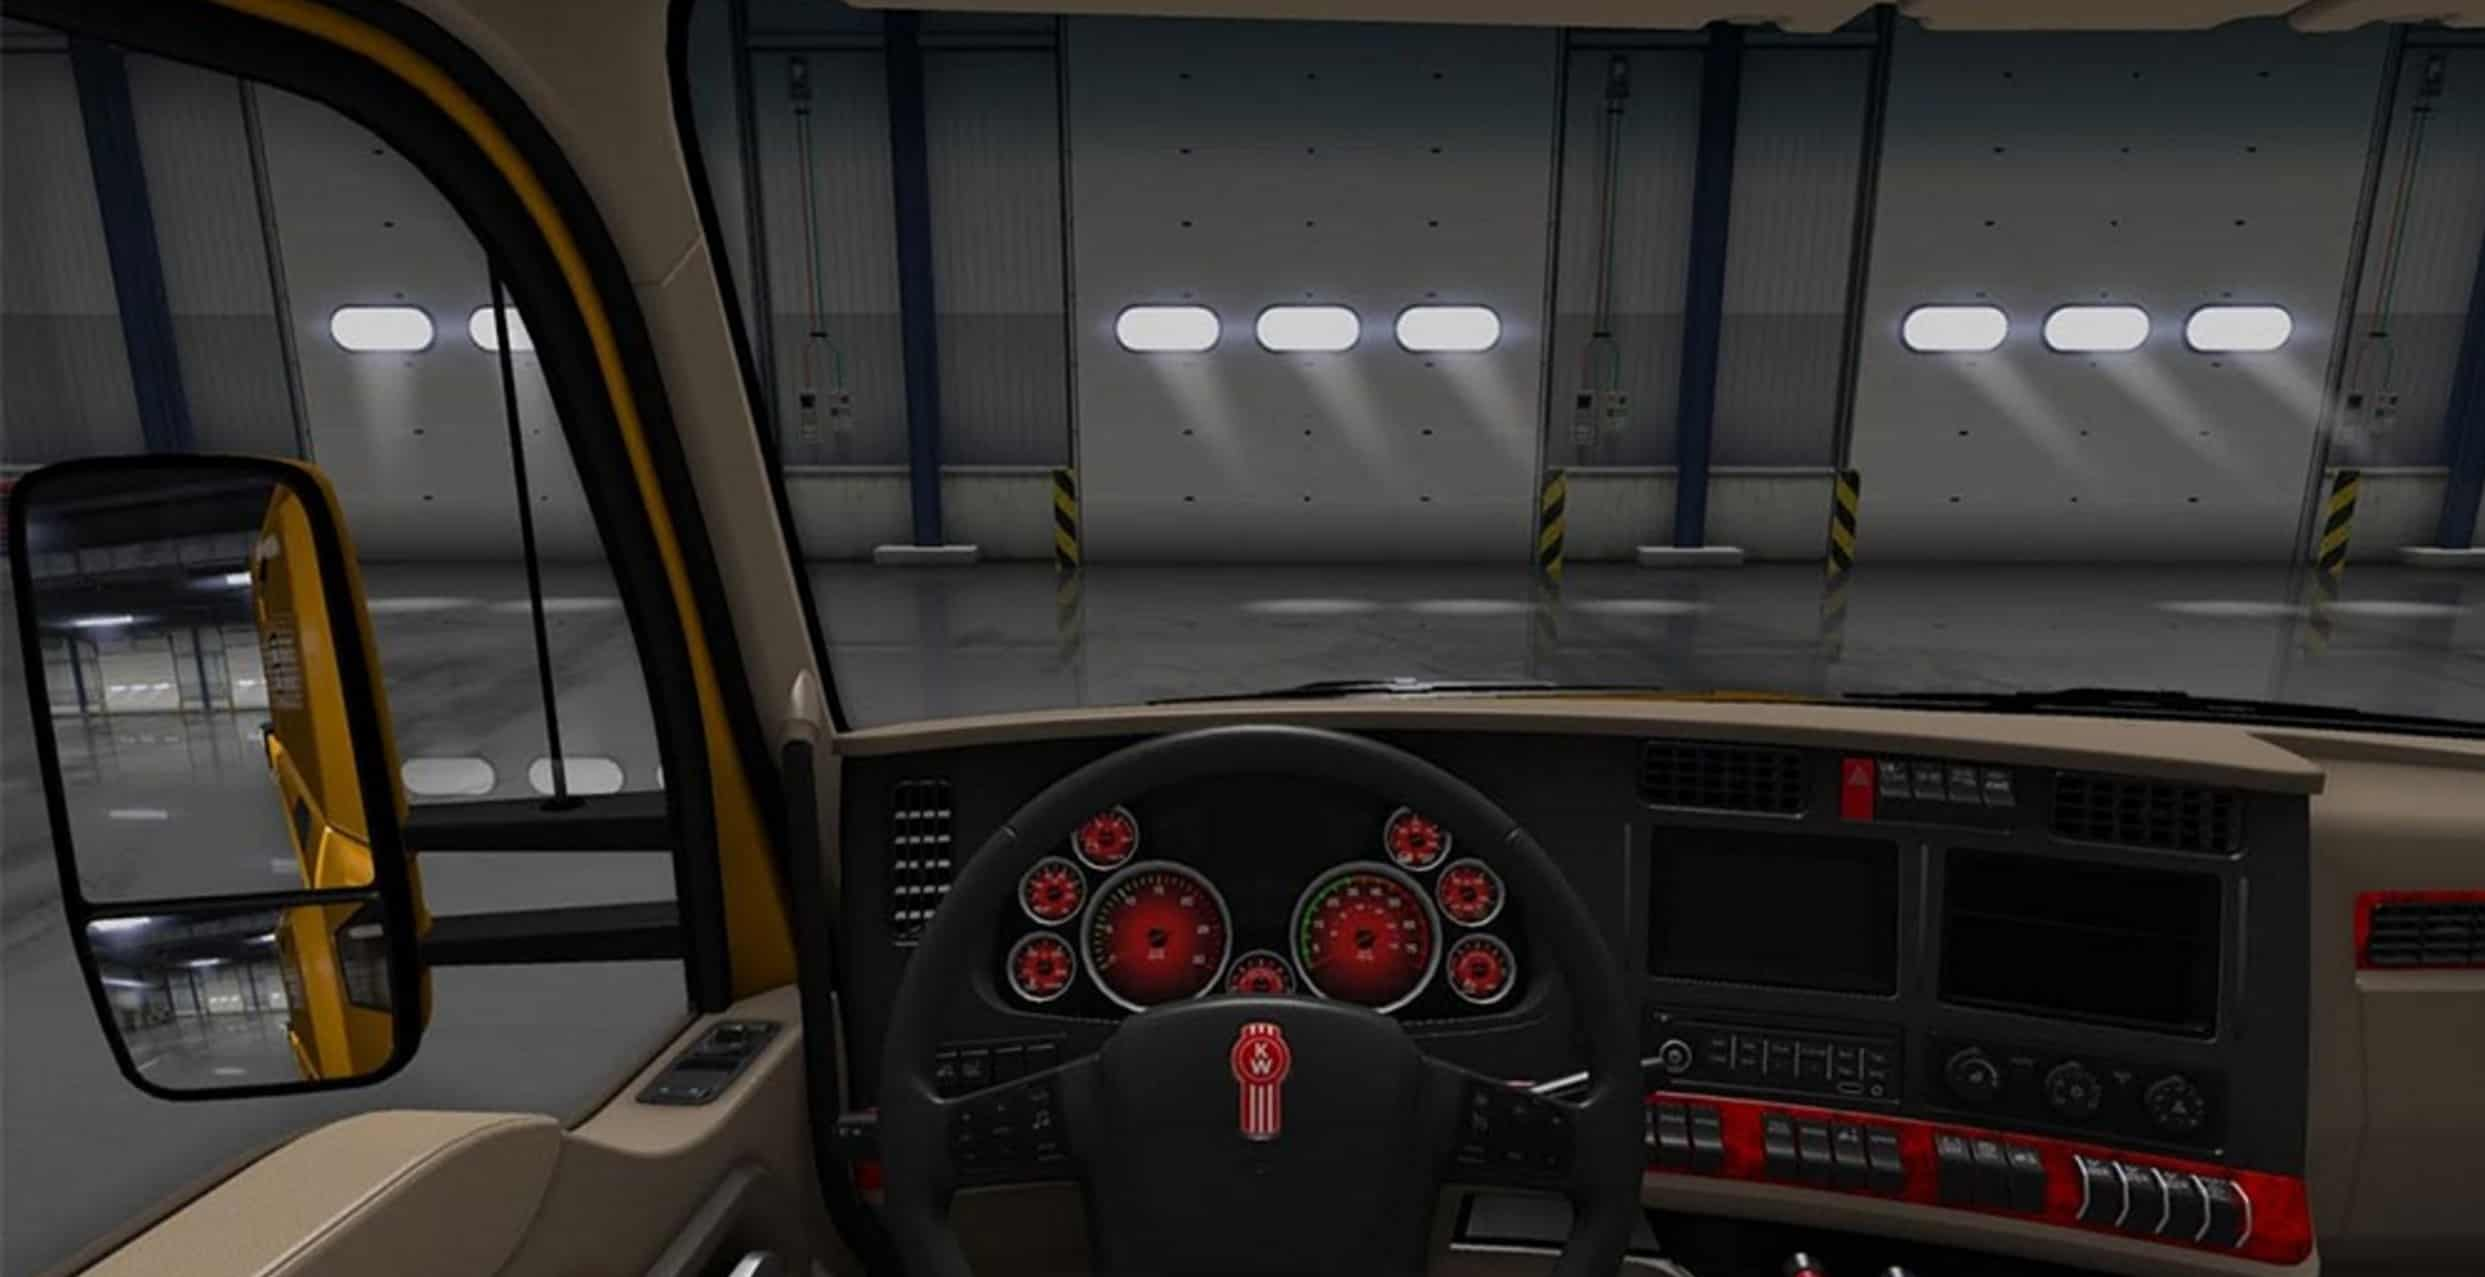 Kenworth t680 Dashboard red Mod 2 kenworth t680 dashboard red mod american truck simulator mod 2016 kenworth t680 fuse box diagram at gsmx.co